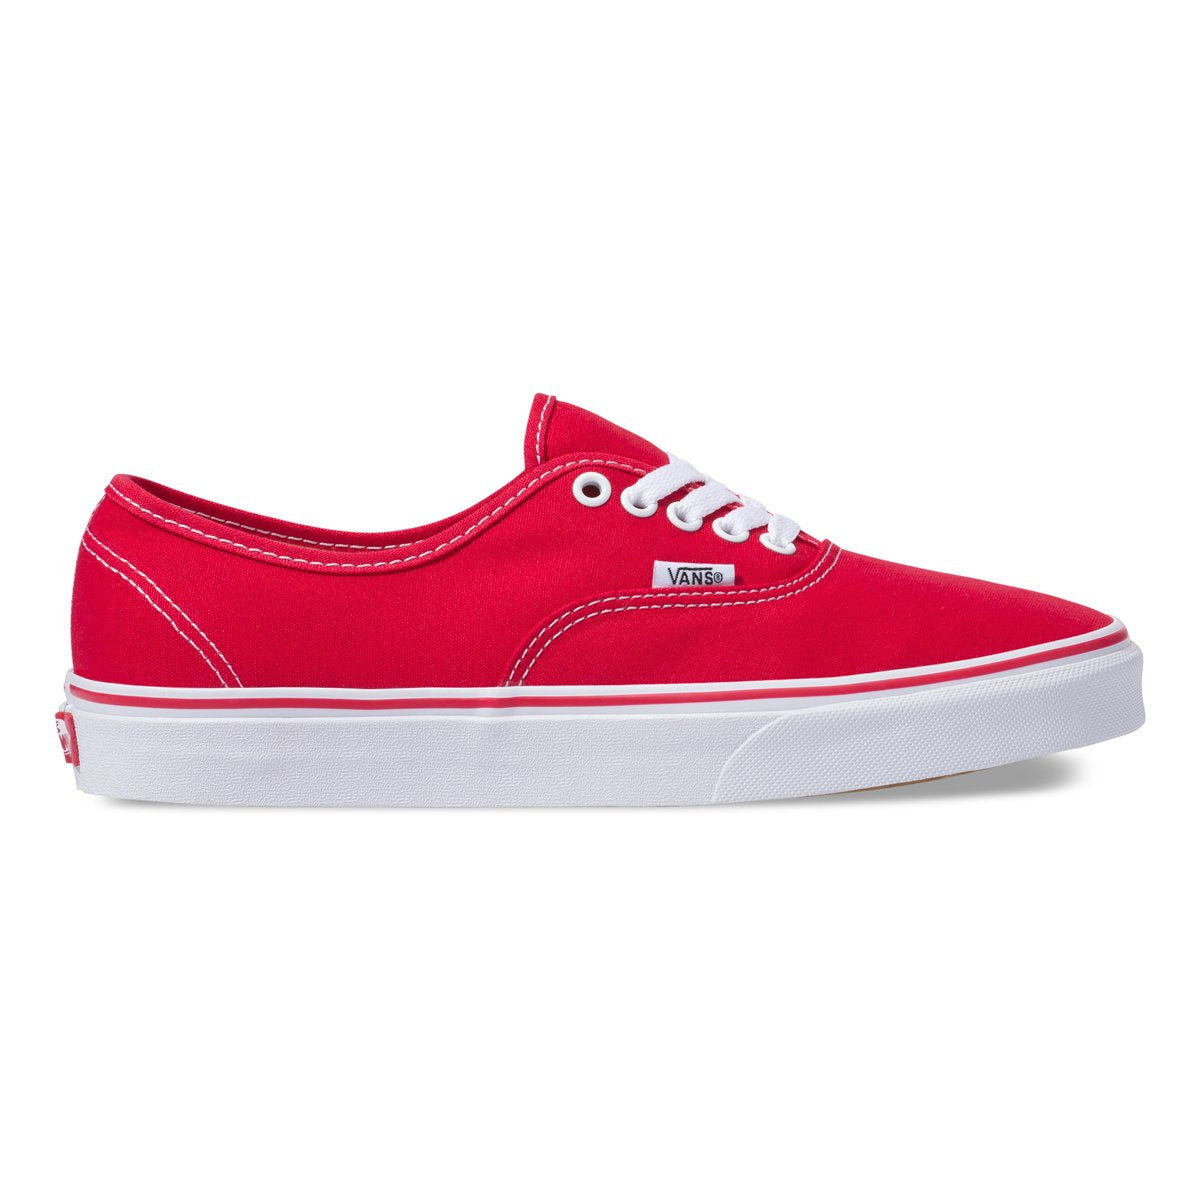 Zapatillas Vans Authentic Plain - Red - Vans